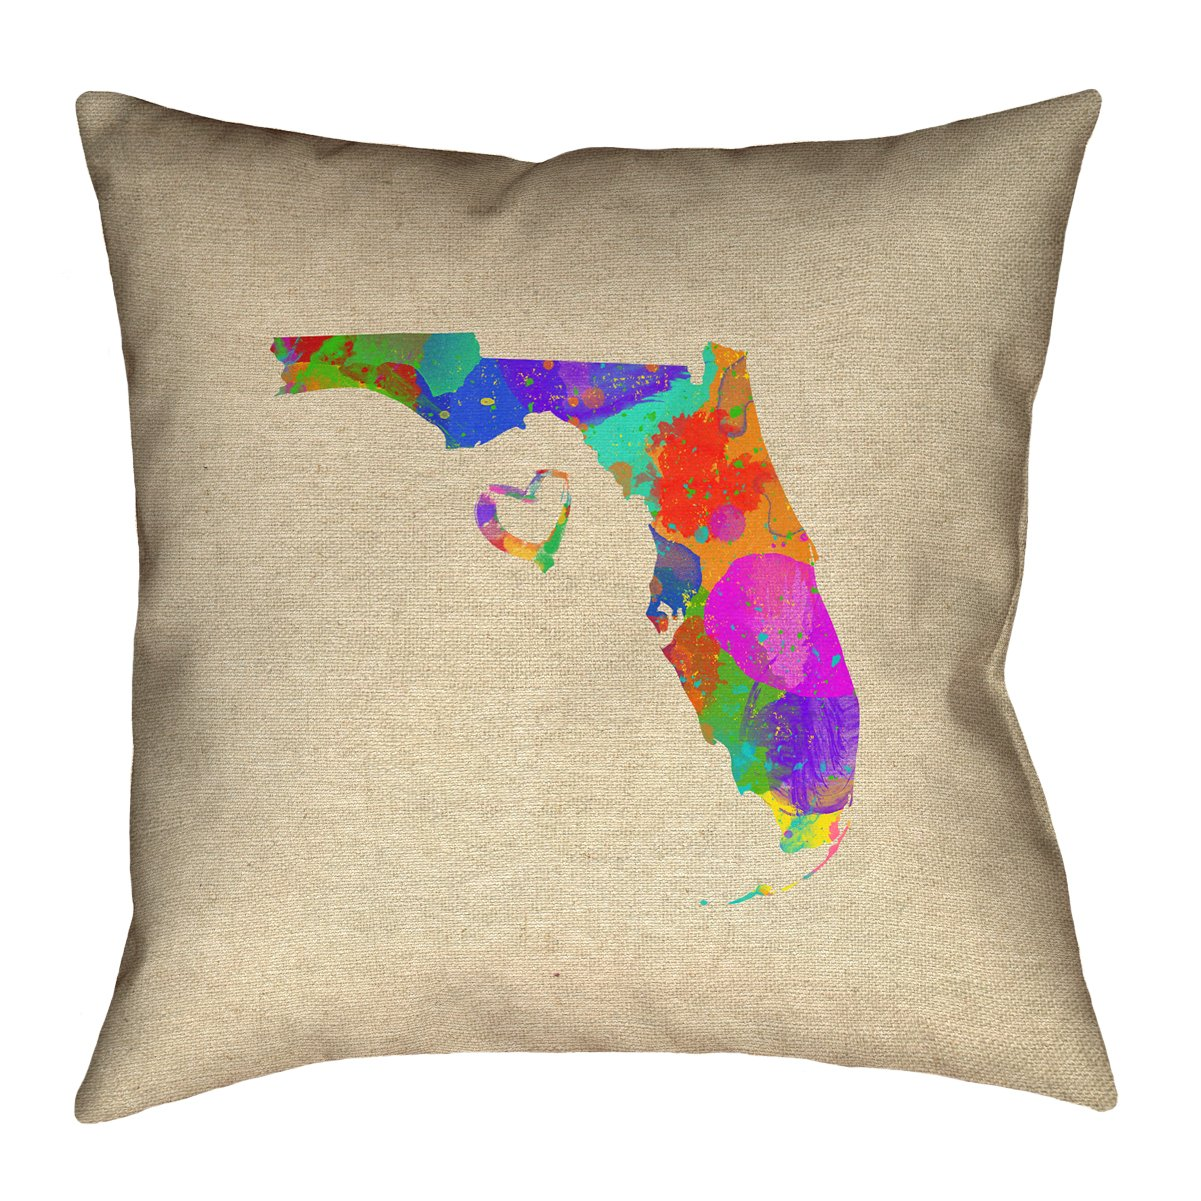 ArtVerse Katelyn Smith 26 x 26 Poly Twill Double Sided Print with Concealed Zipper /& Insert Florida Love Watercolor Pillow